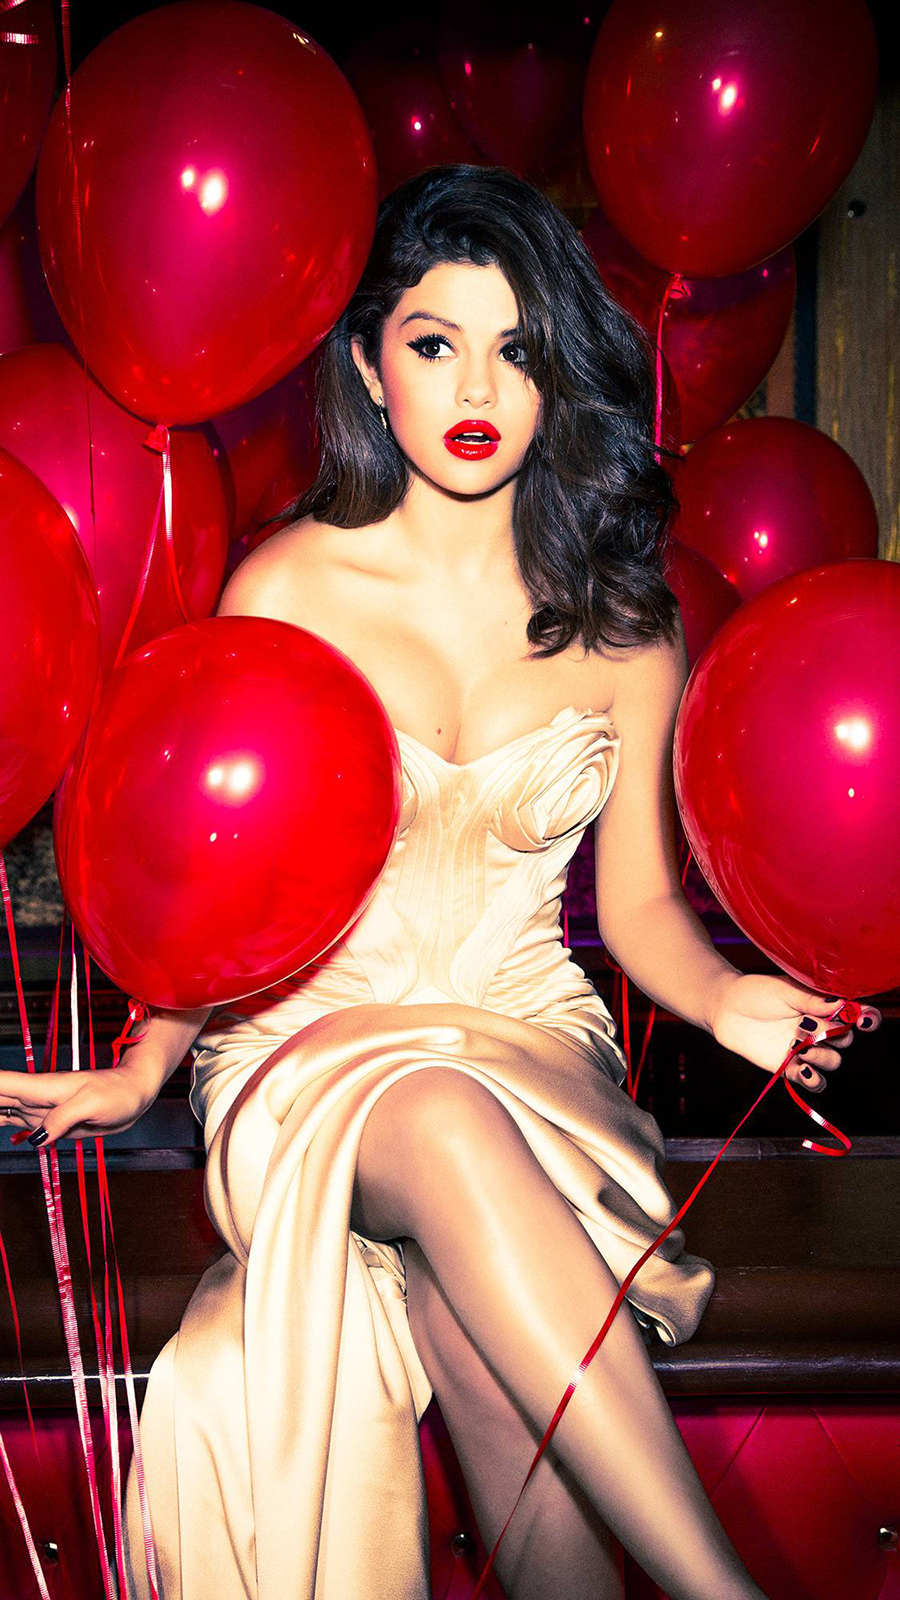 Selena Gomez Wallpapers Now Download For Your Device